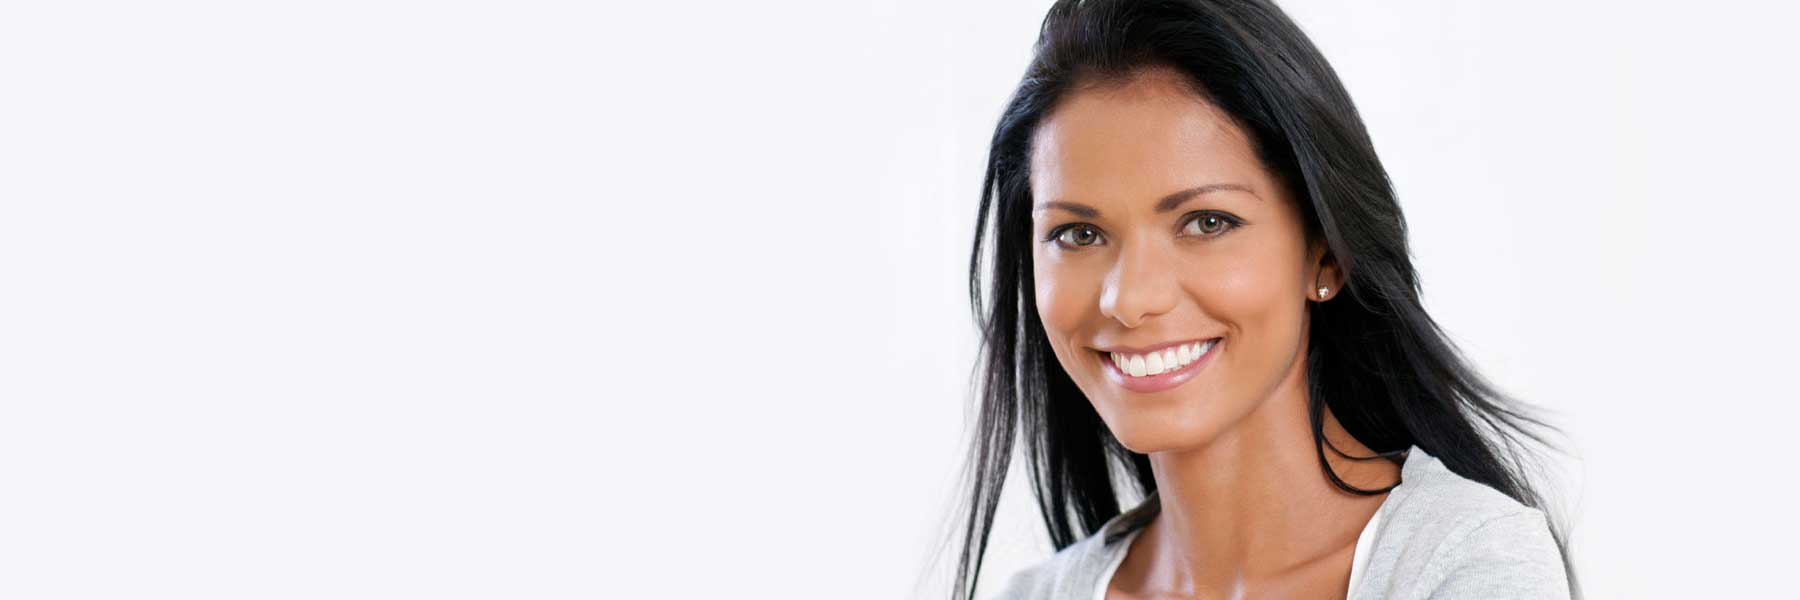 Periodontal Treatment in San Diego banner image